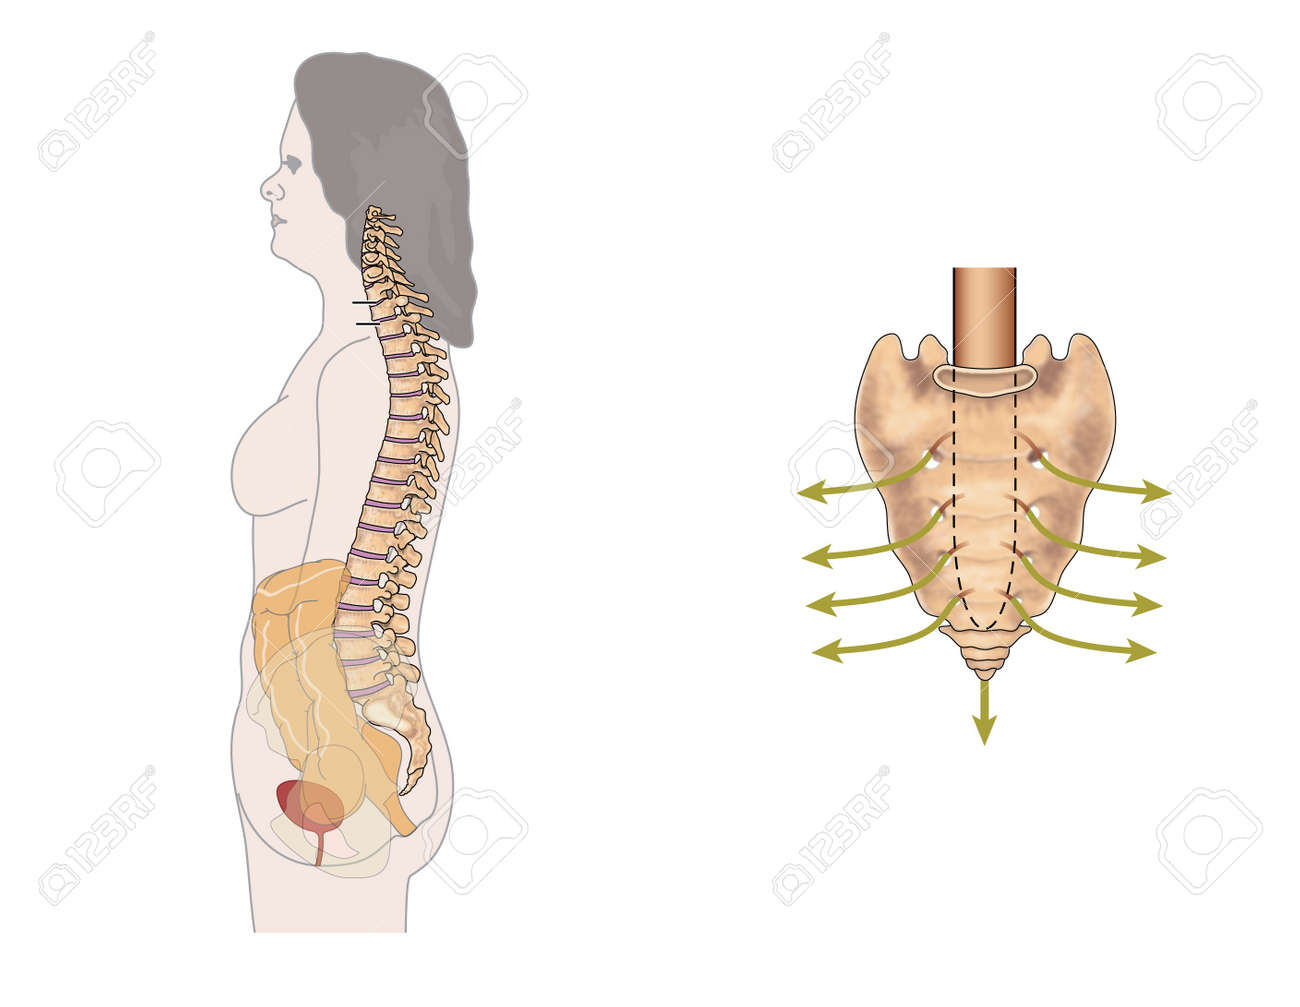 Side View Of The Bowel Spinal Column And Sacral Nerves To Show